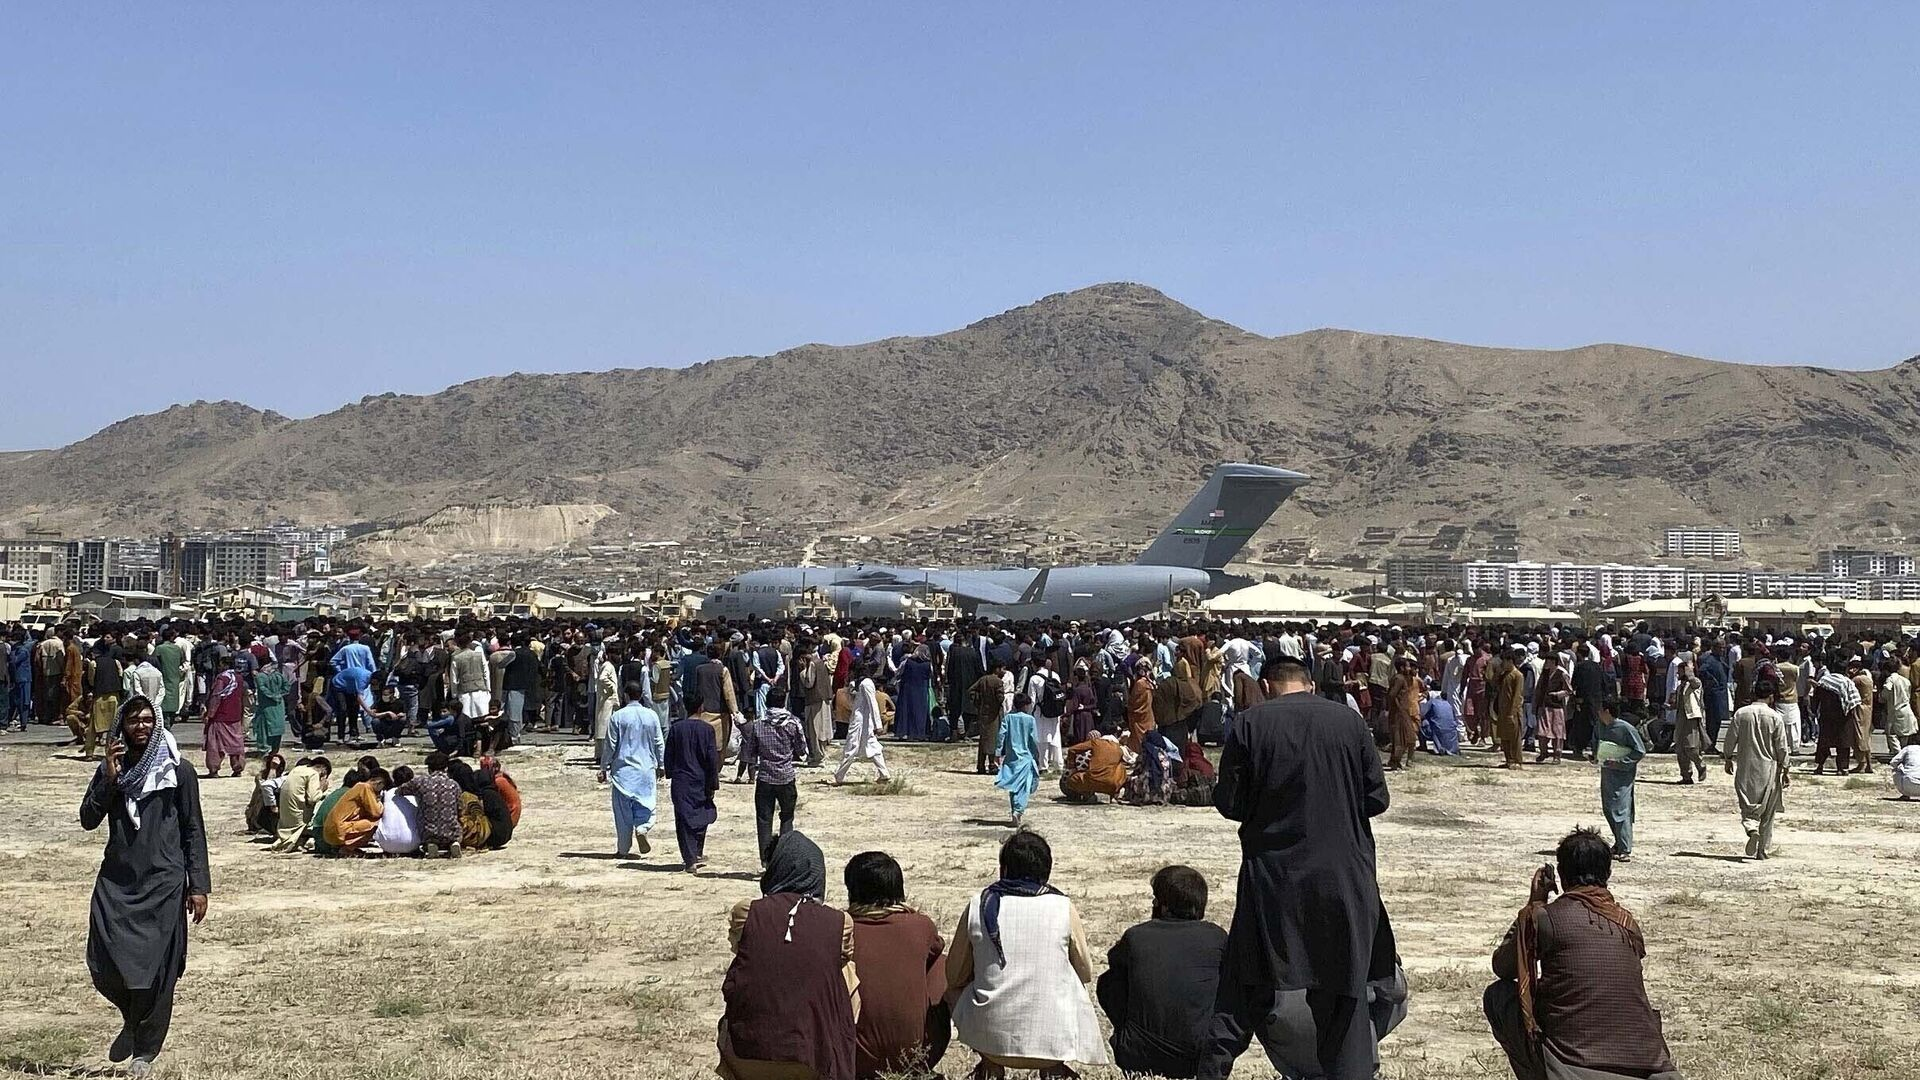 In this 16 August 2021 file photo, hundreds of people gather near a U.S. Air Force C-17 transport plane along the perimeter at the international airport in Kabul, Afghanistan after the Taliban takeover. - Sputnik International, 1920, 04.09.2021